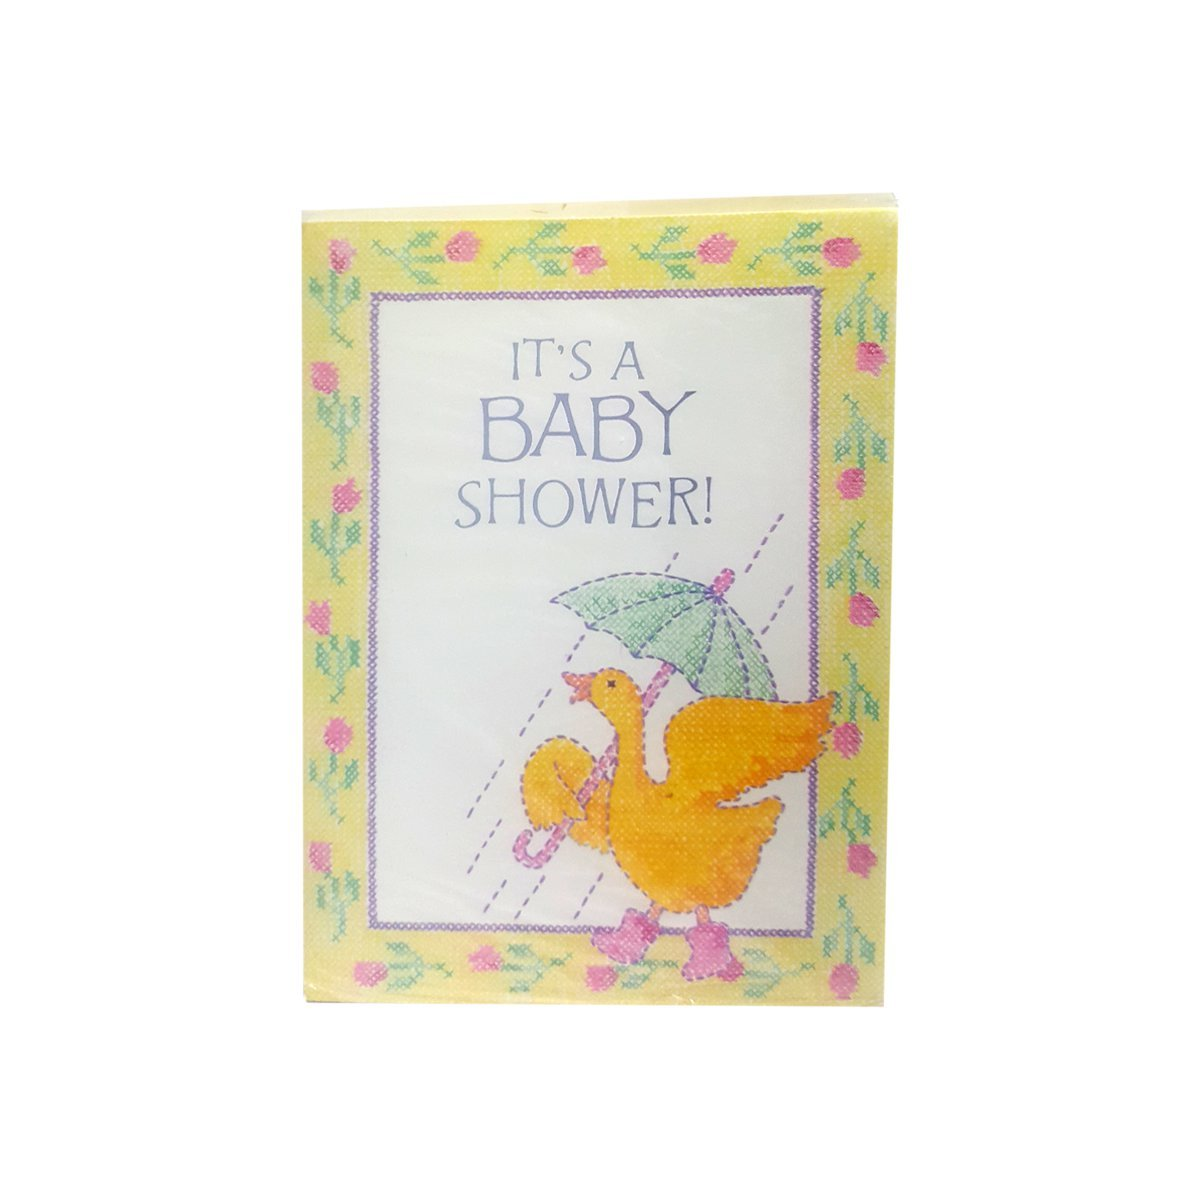 Amazon.com: American Greetings Baby Shower Invitations (8-Count ...